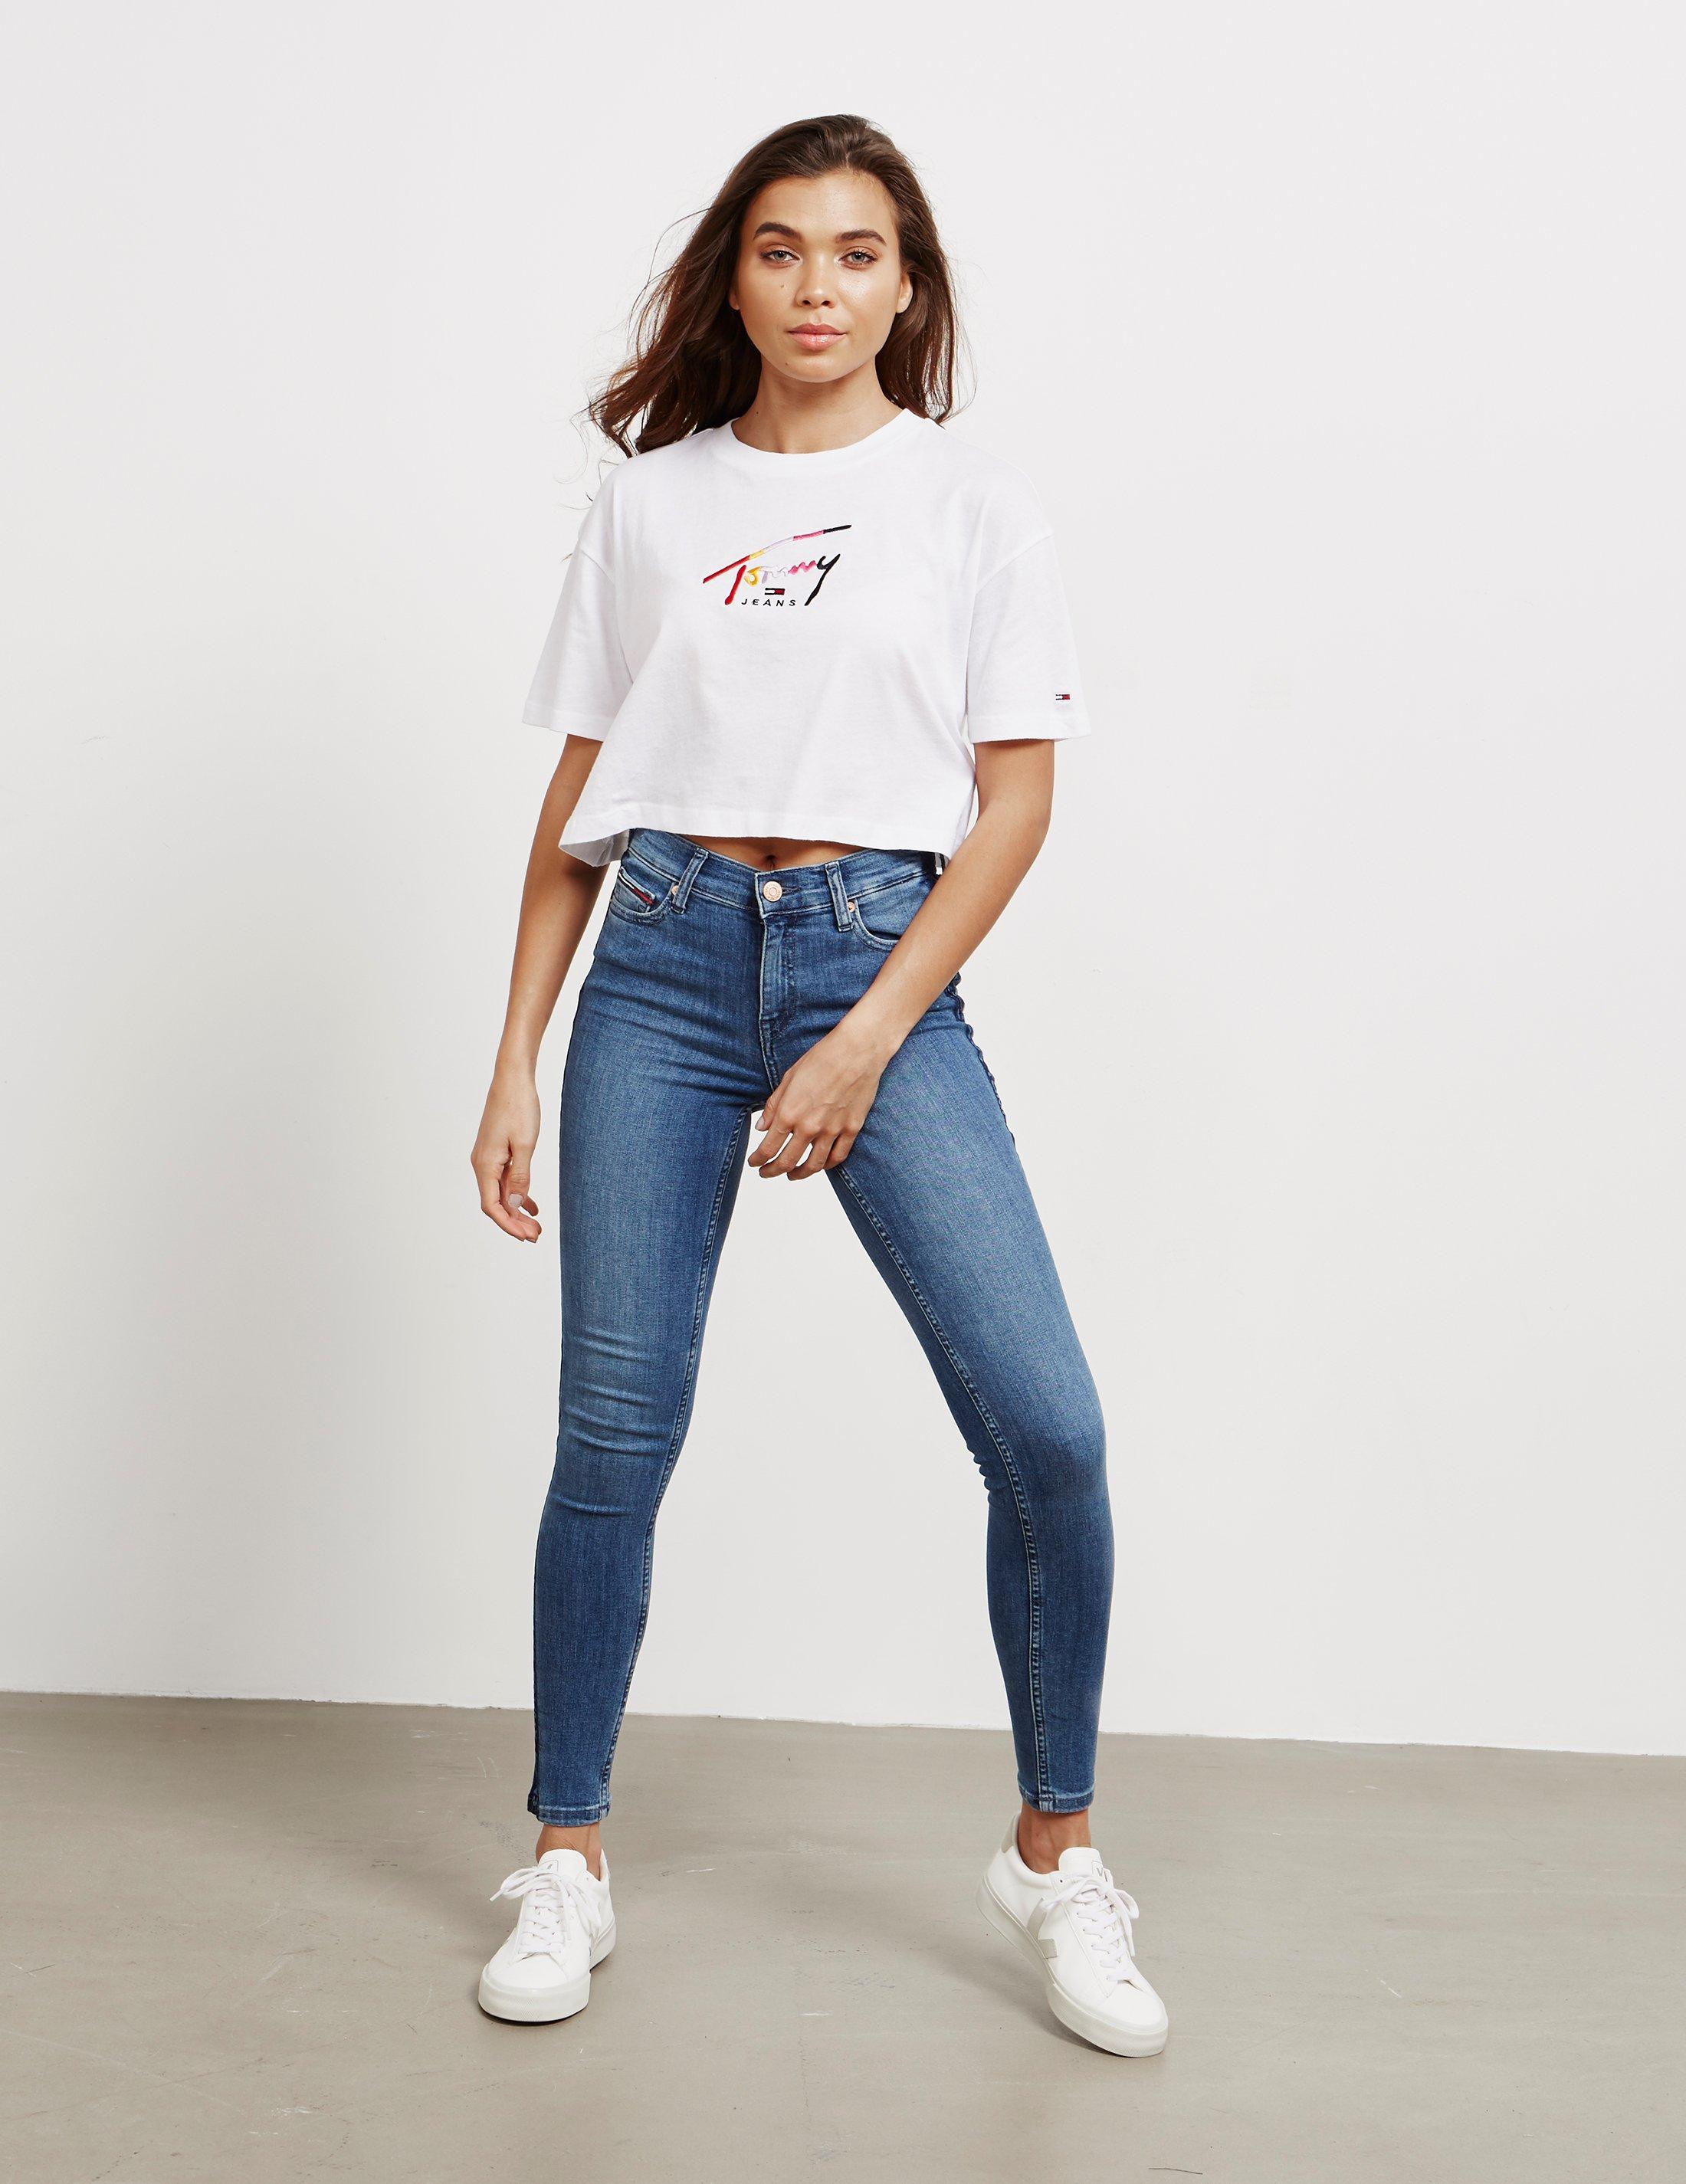 6e091224 Lyst - Tommy Hilfiger Tommy Crop Short Sleeve T-shirt White in White